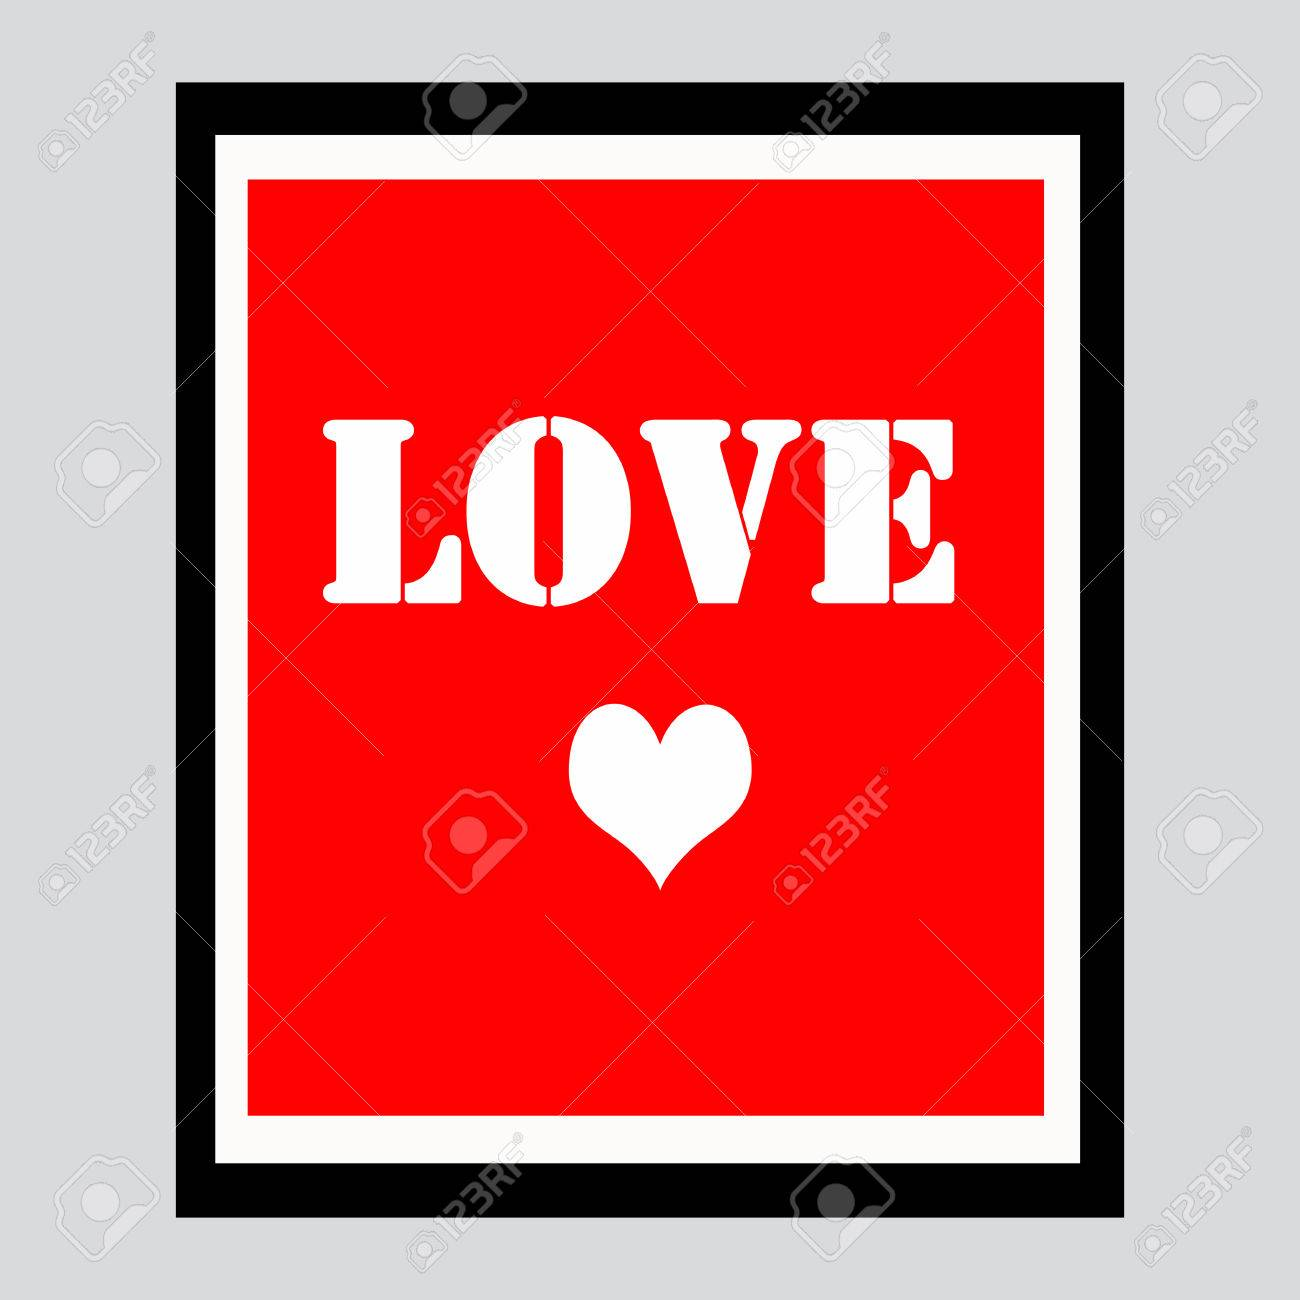 Love quote poster effects poster frame colors background and love quote poster effects poster frame colors background and colors text are editable jeuxipadfo Gallery